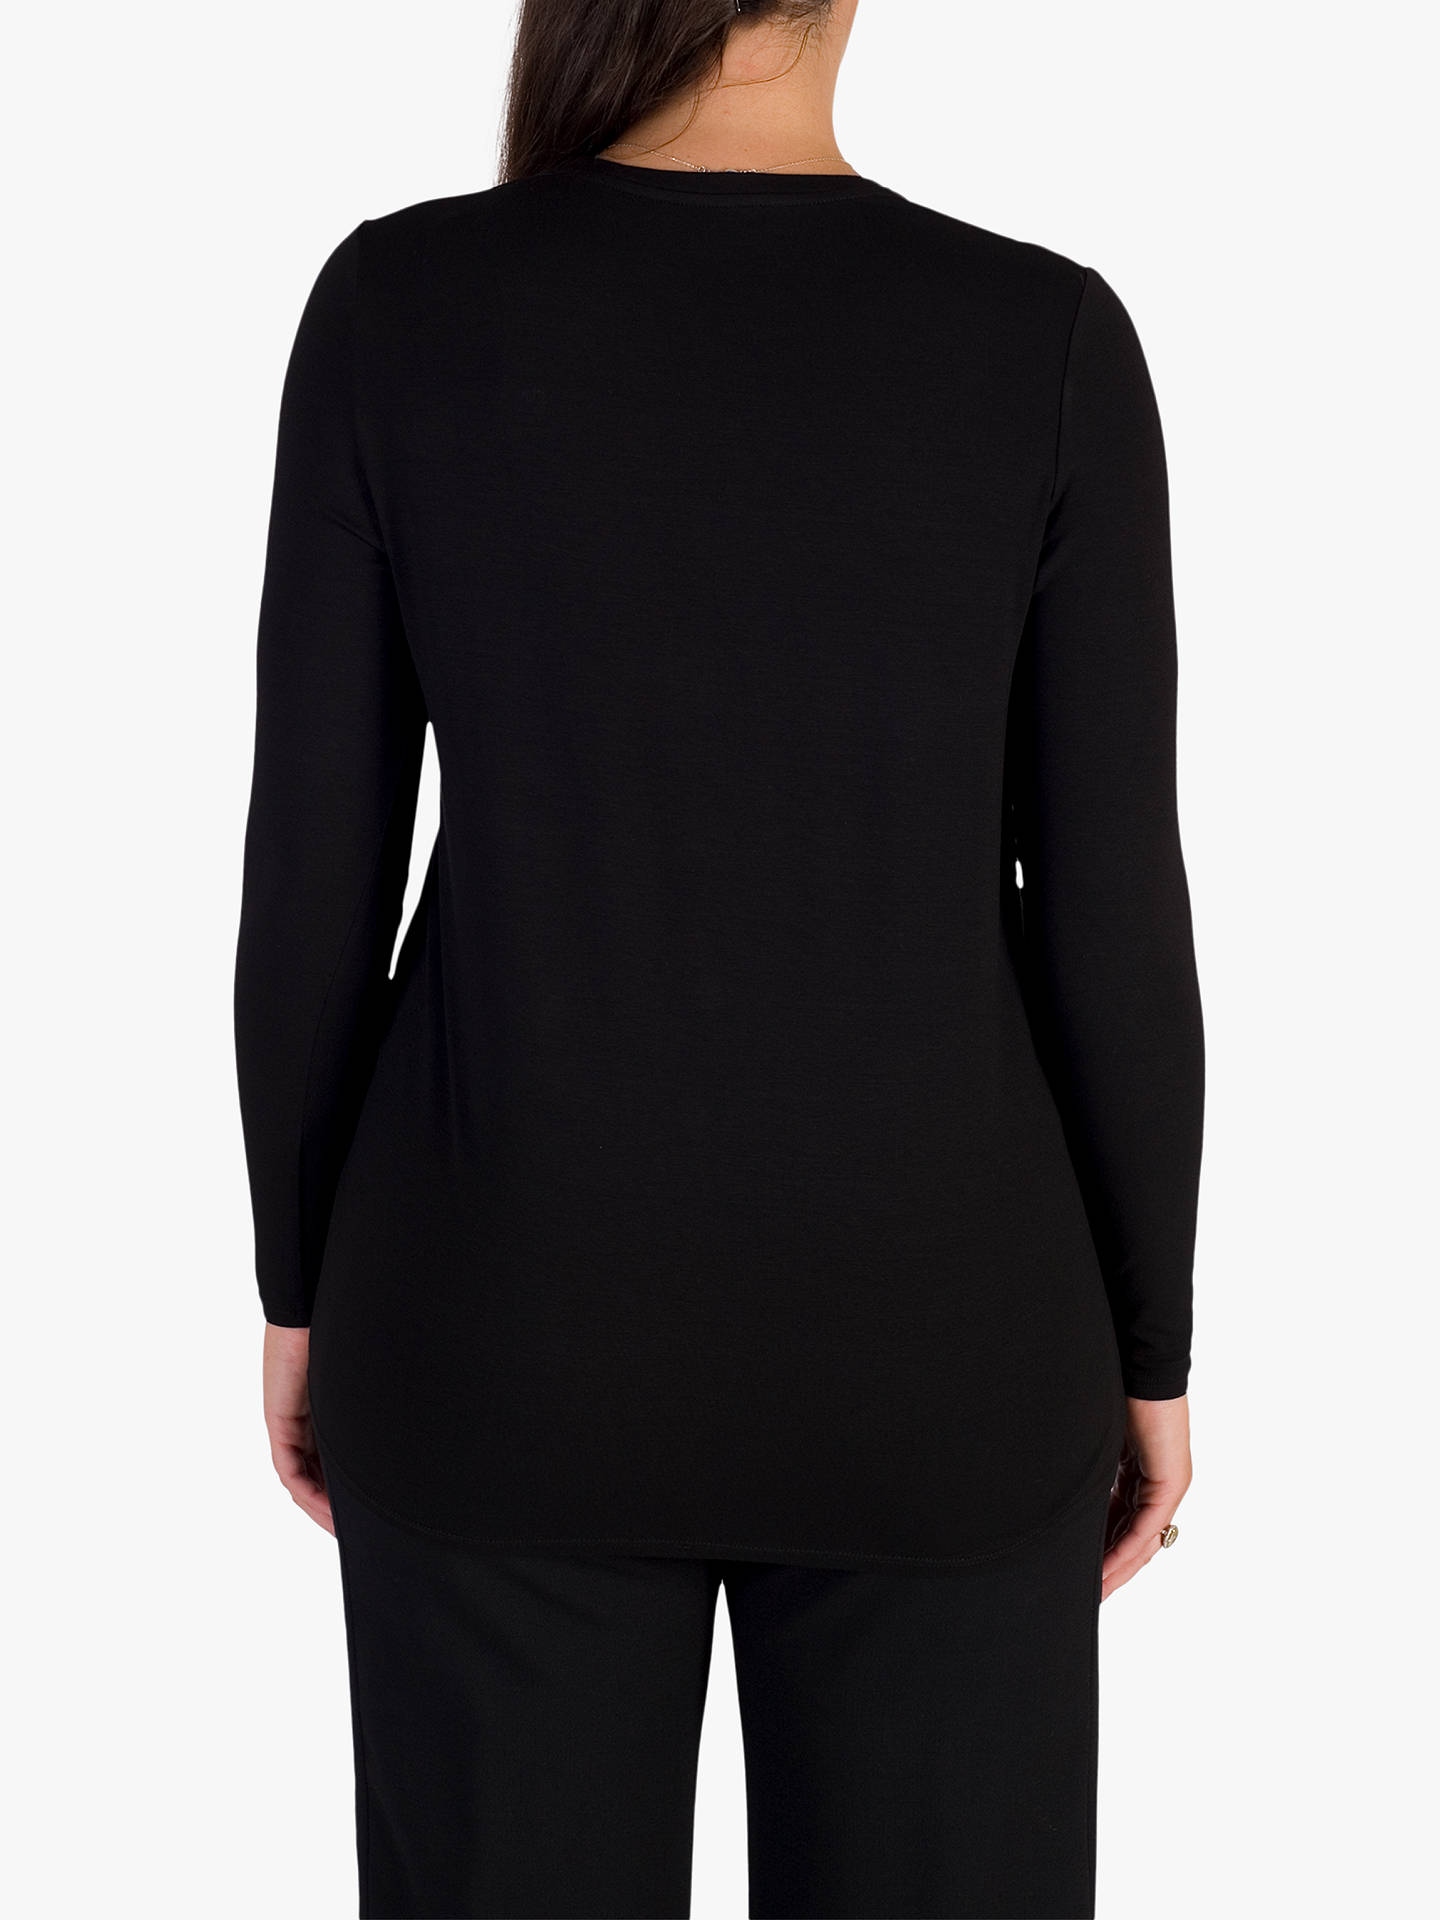 BuyChesca Jersey & Crepe Top, Black, 12-14 Online at johnlewis.com